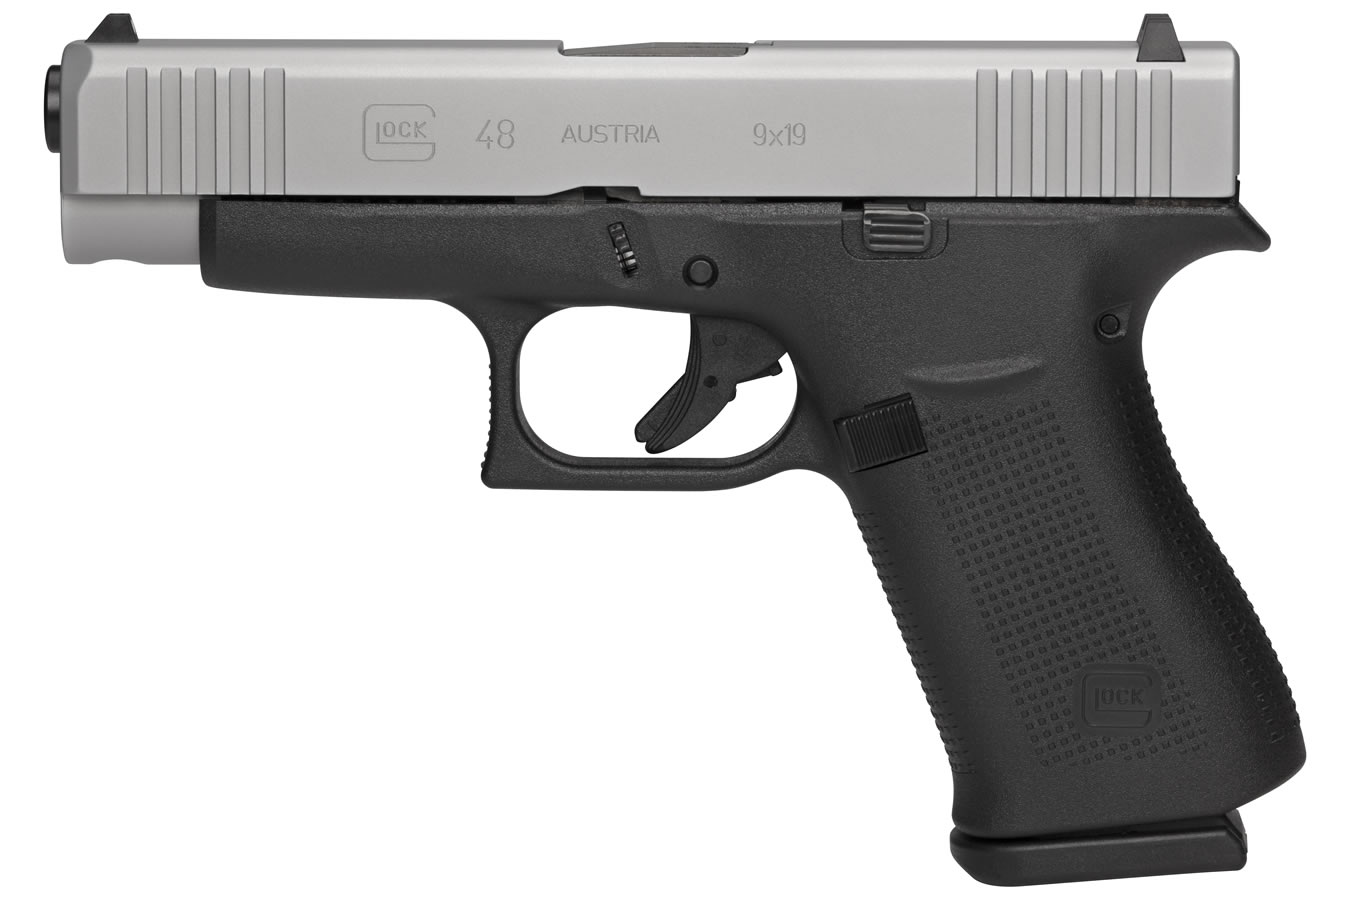 48 9MM COMPACT PISTOL WITH SILVER SLIDE (LE)